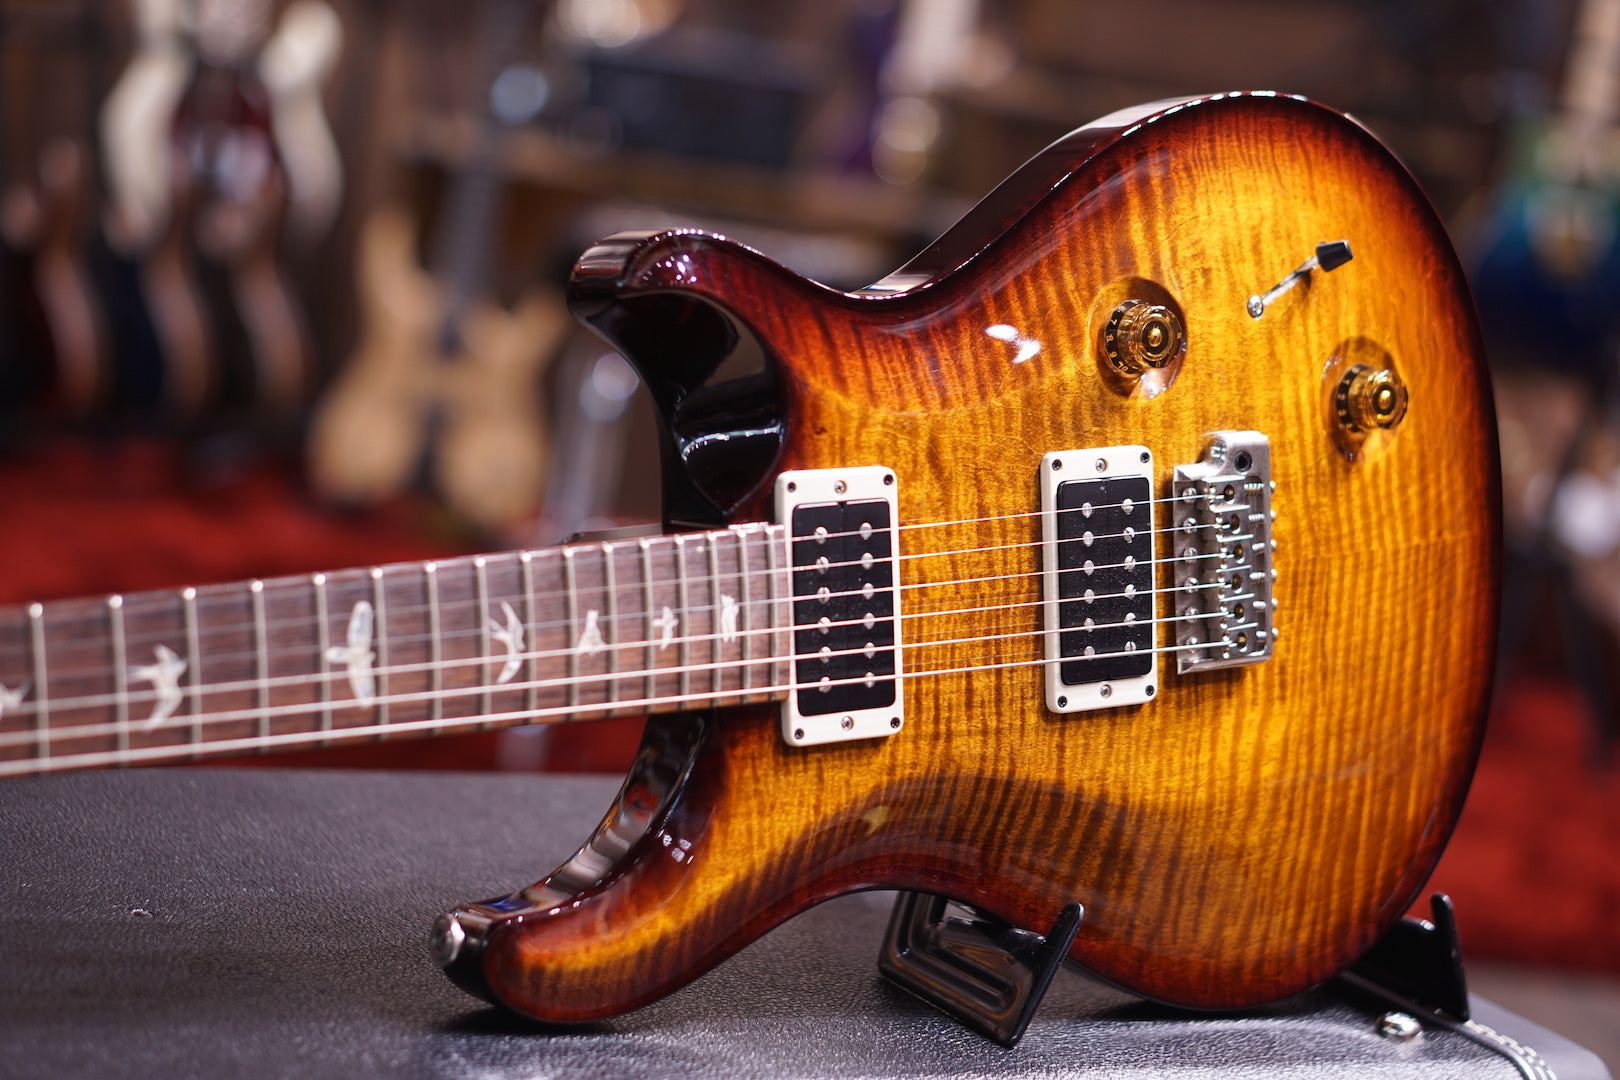 PRS CUSTOM 22 BLACK GOLD BURST fat neck sn 204261 PRS - HIENDGUITAR.COM